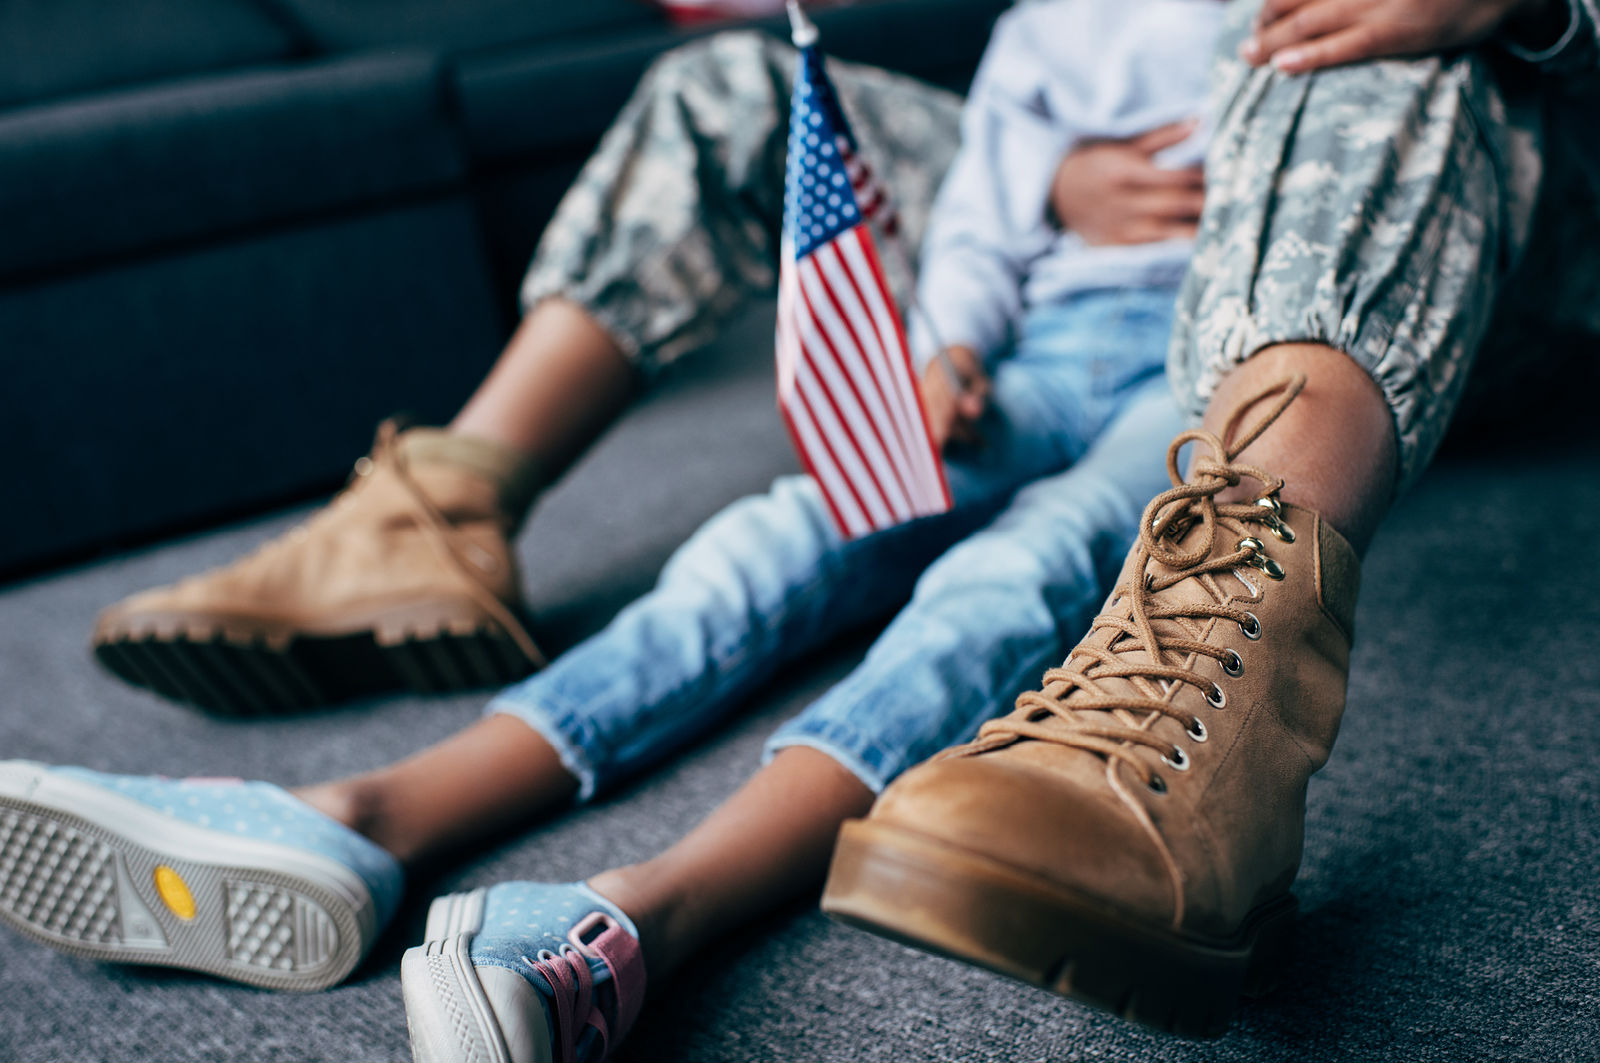 mother and daughter in military uniform with american flag